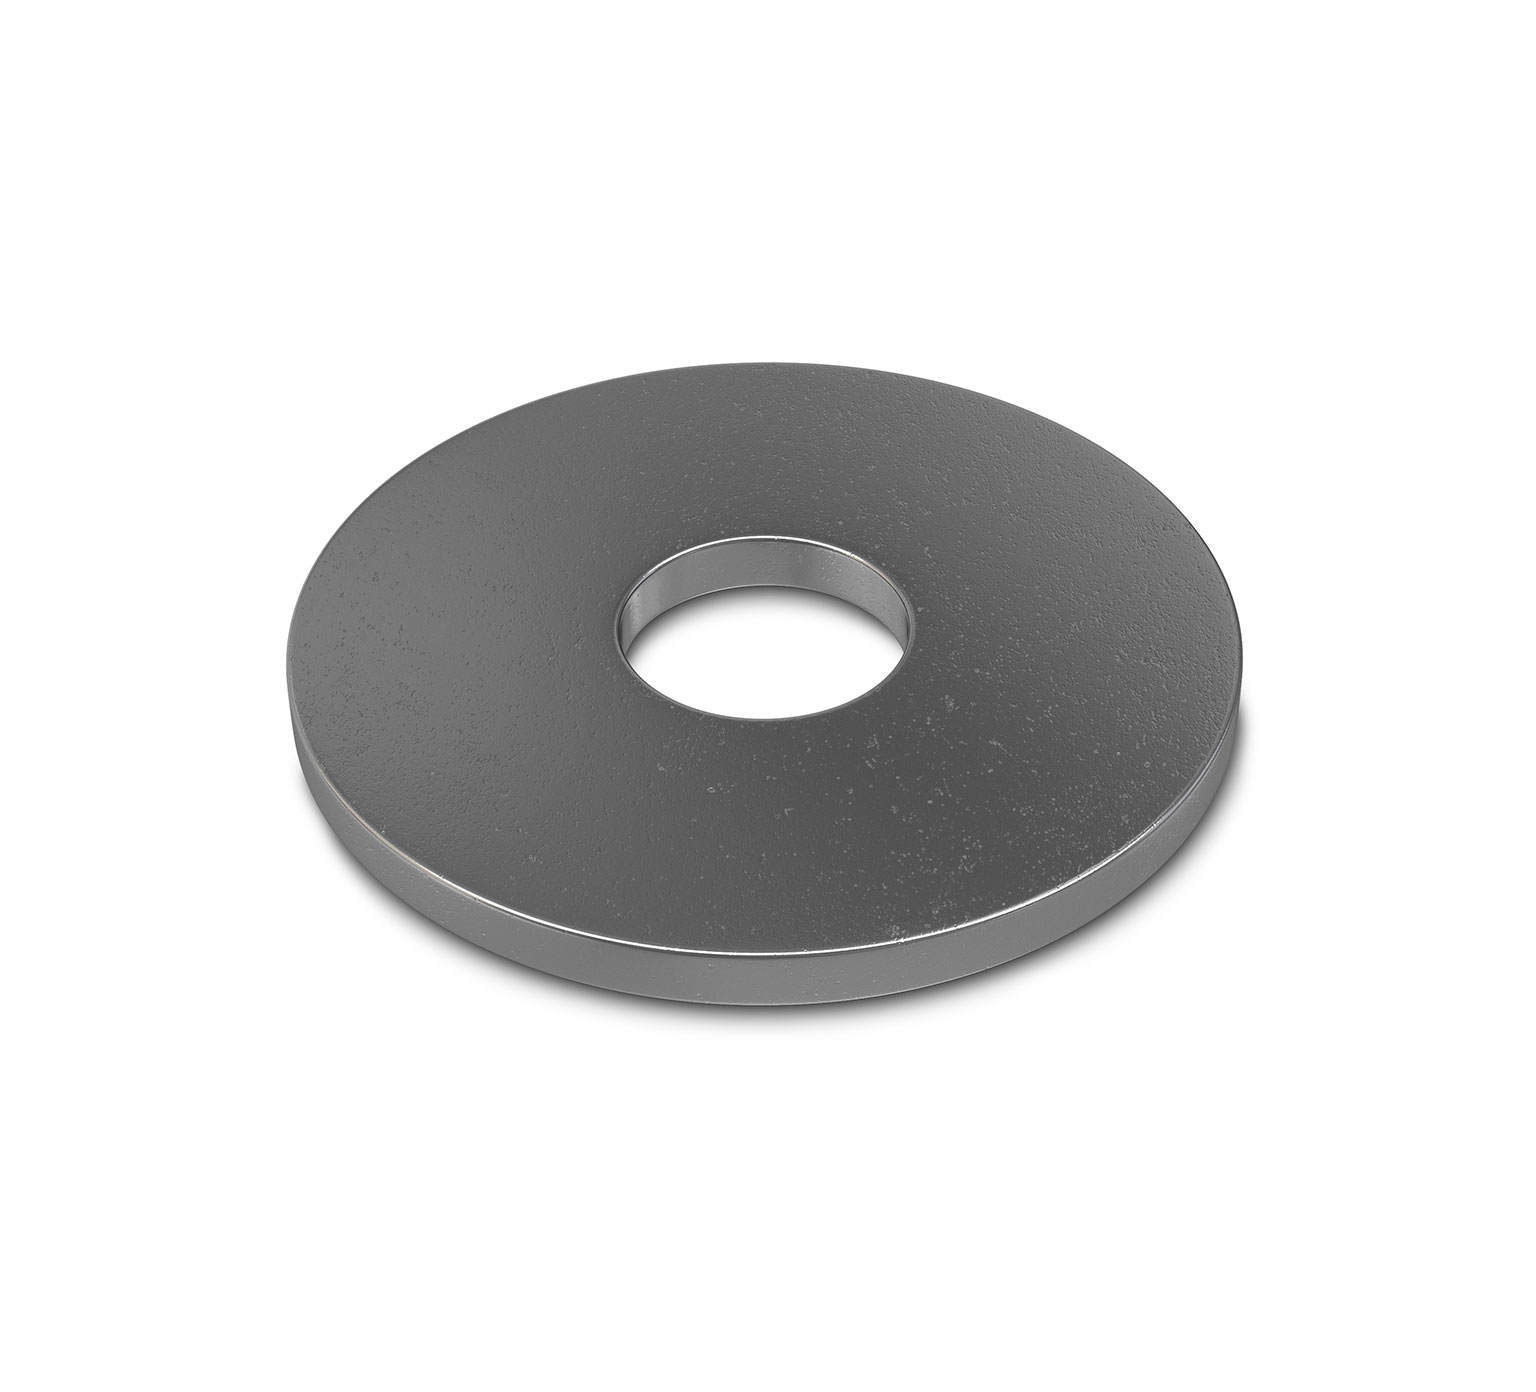 51564 Steel Flat Washer - 1.75 OD x 0.531 ID x 0.11 in alt 1